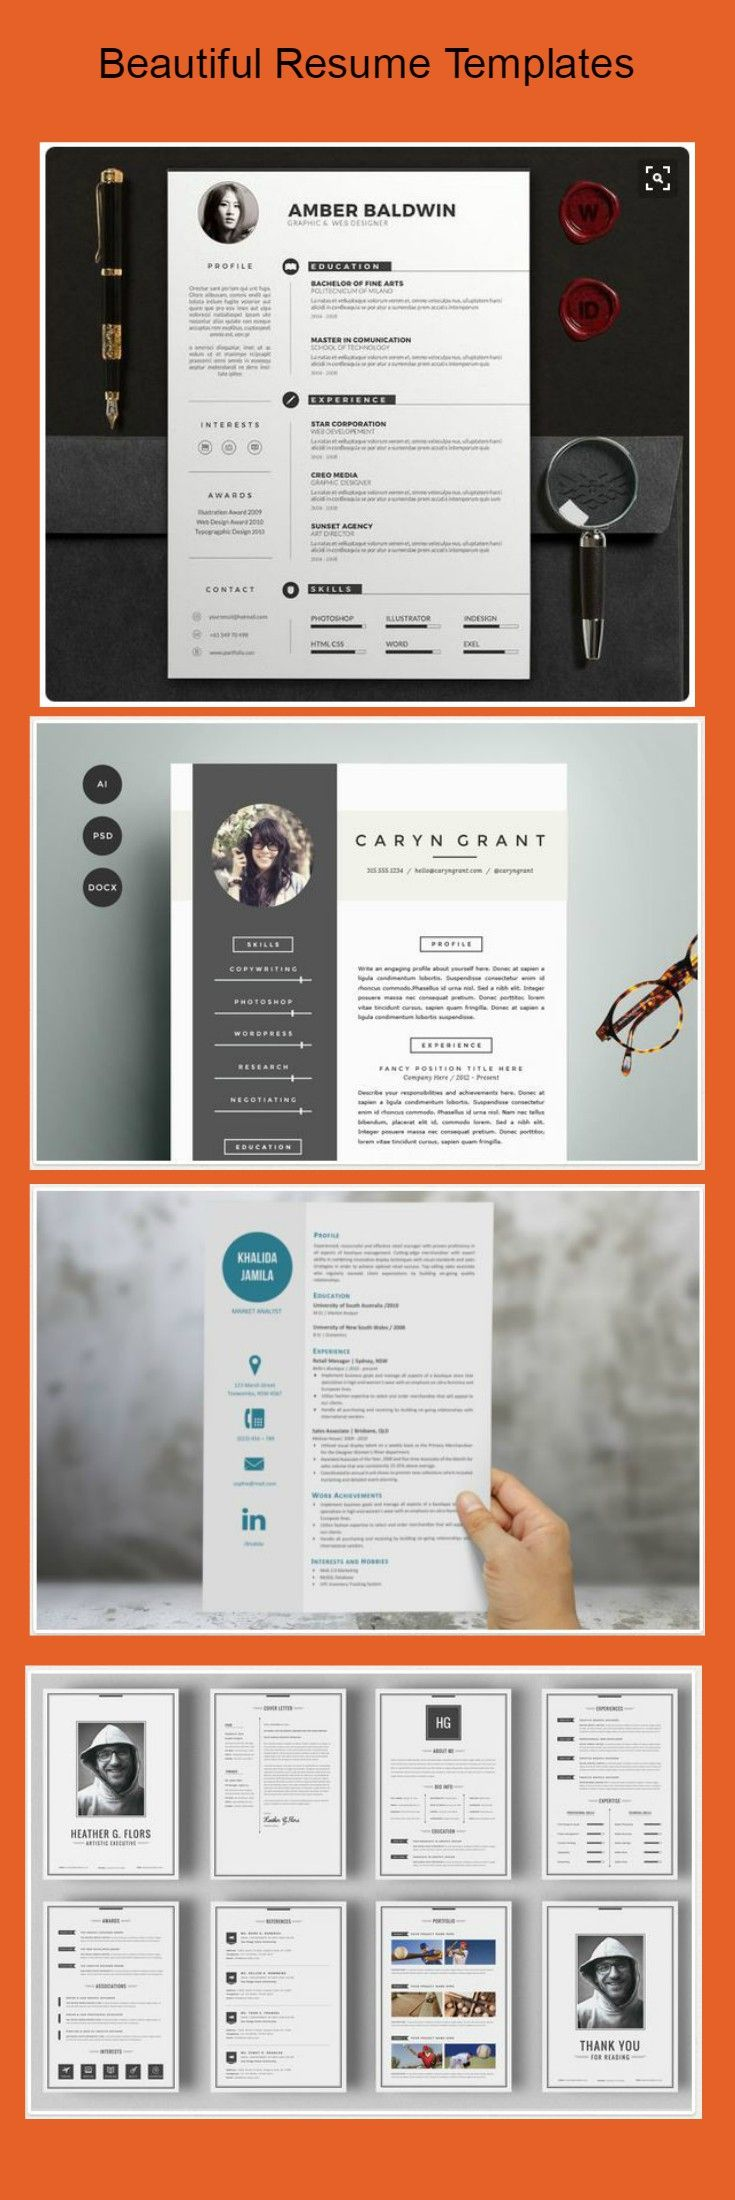 Four page resume docx Human Resources